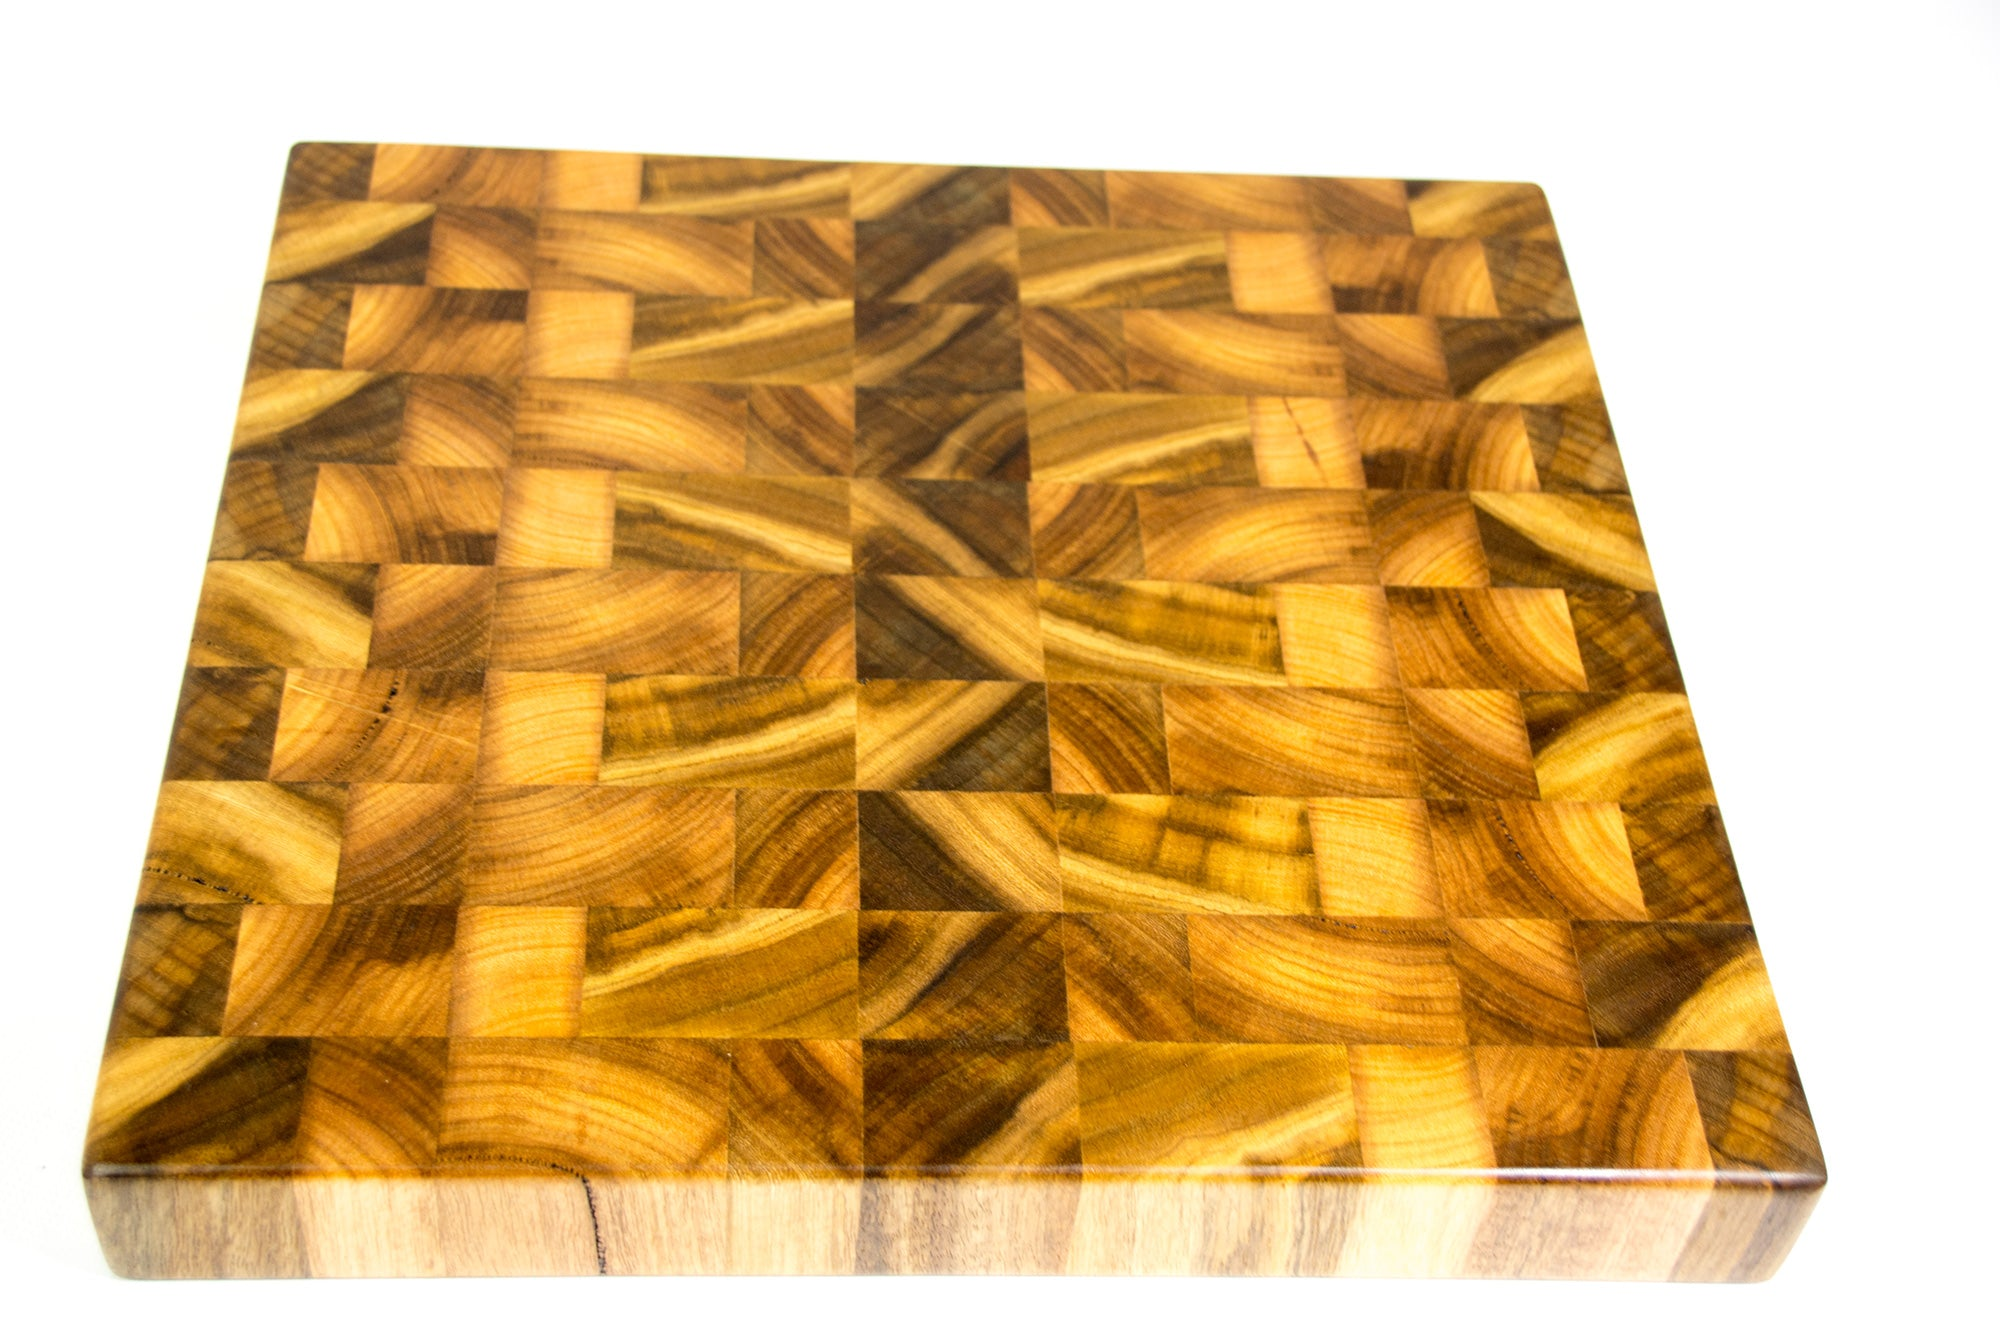 Marri End-Grain Chopping Board / Butcher Block 385x335x50mm (Western Australia Marri)